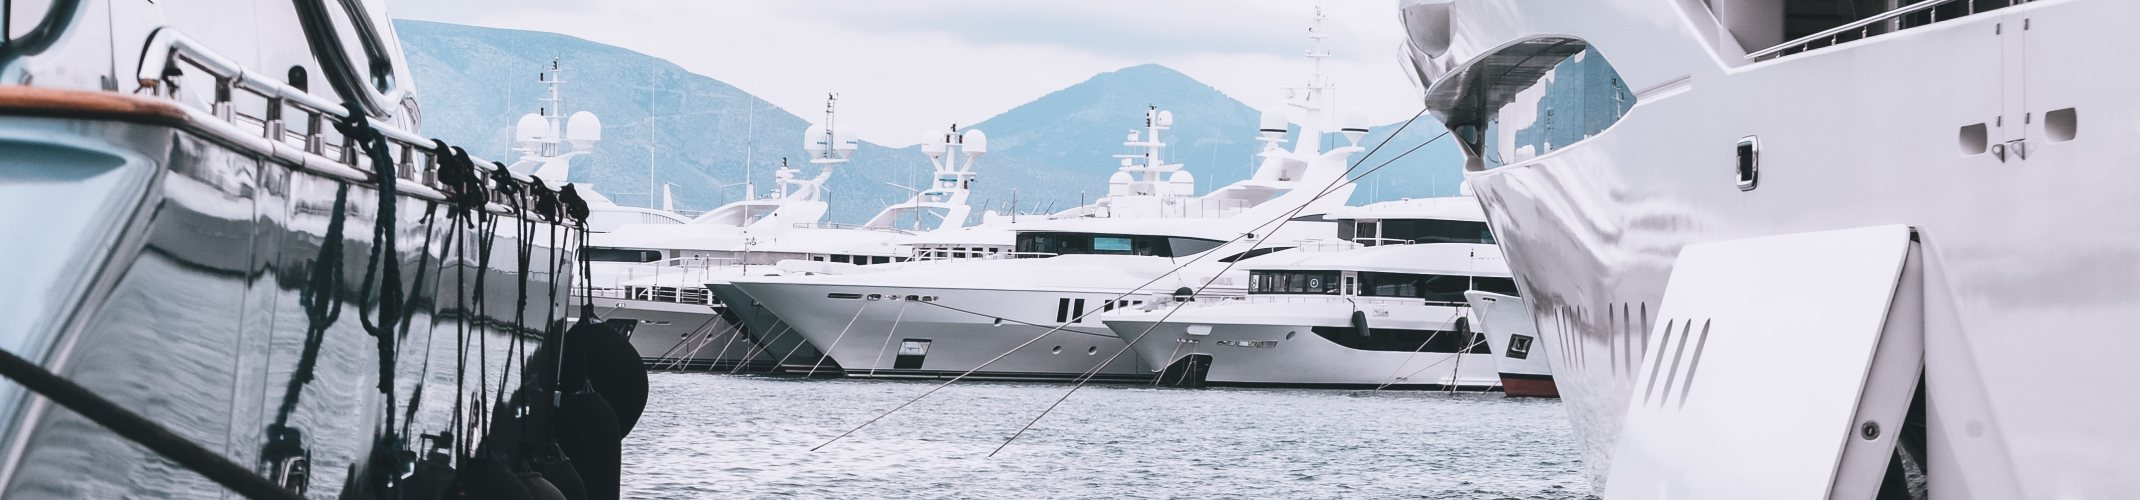 Buying a Boat for Charter